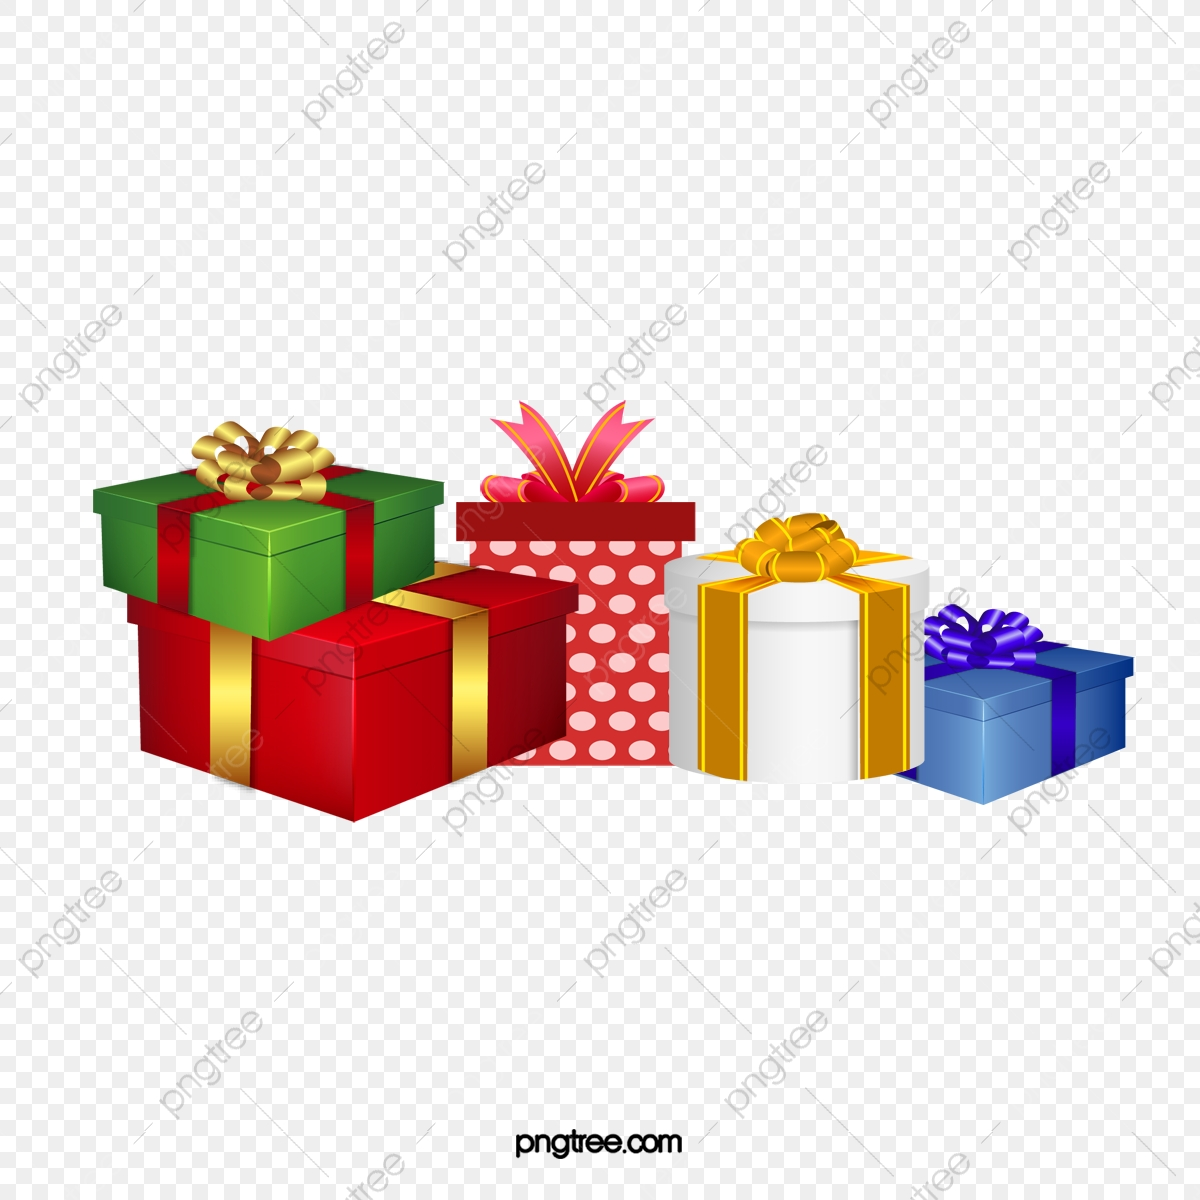 Christmas Gift Png Vector Psd And Clipart With Transparent Background For Free Download Pngtree